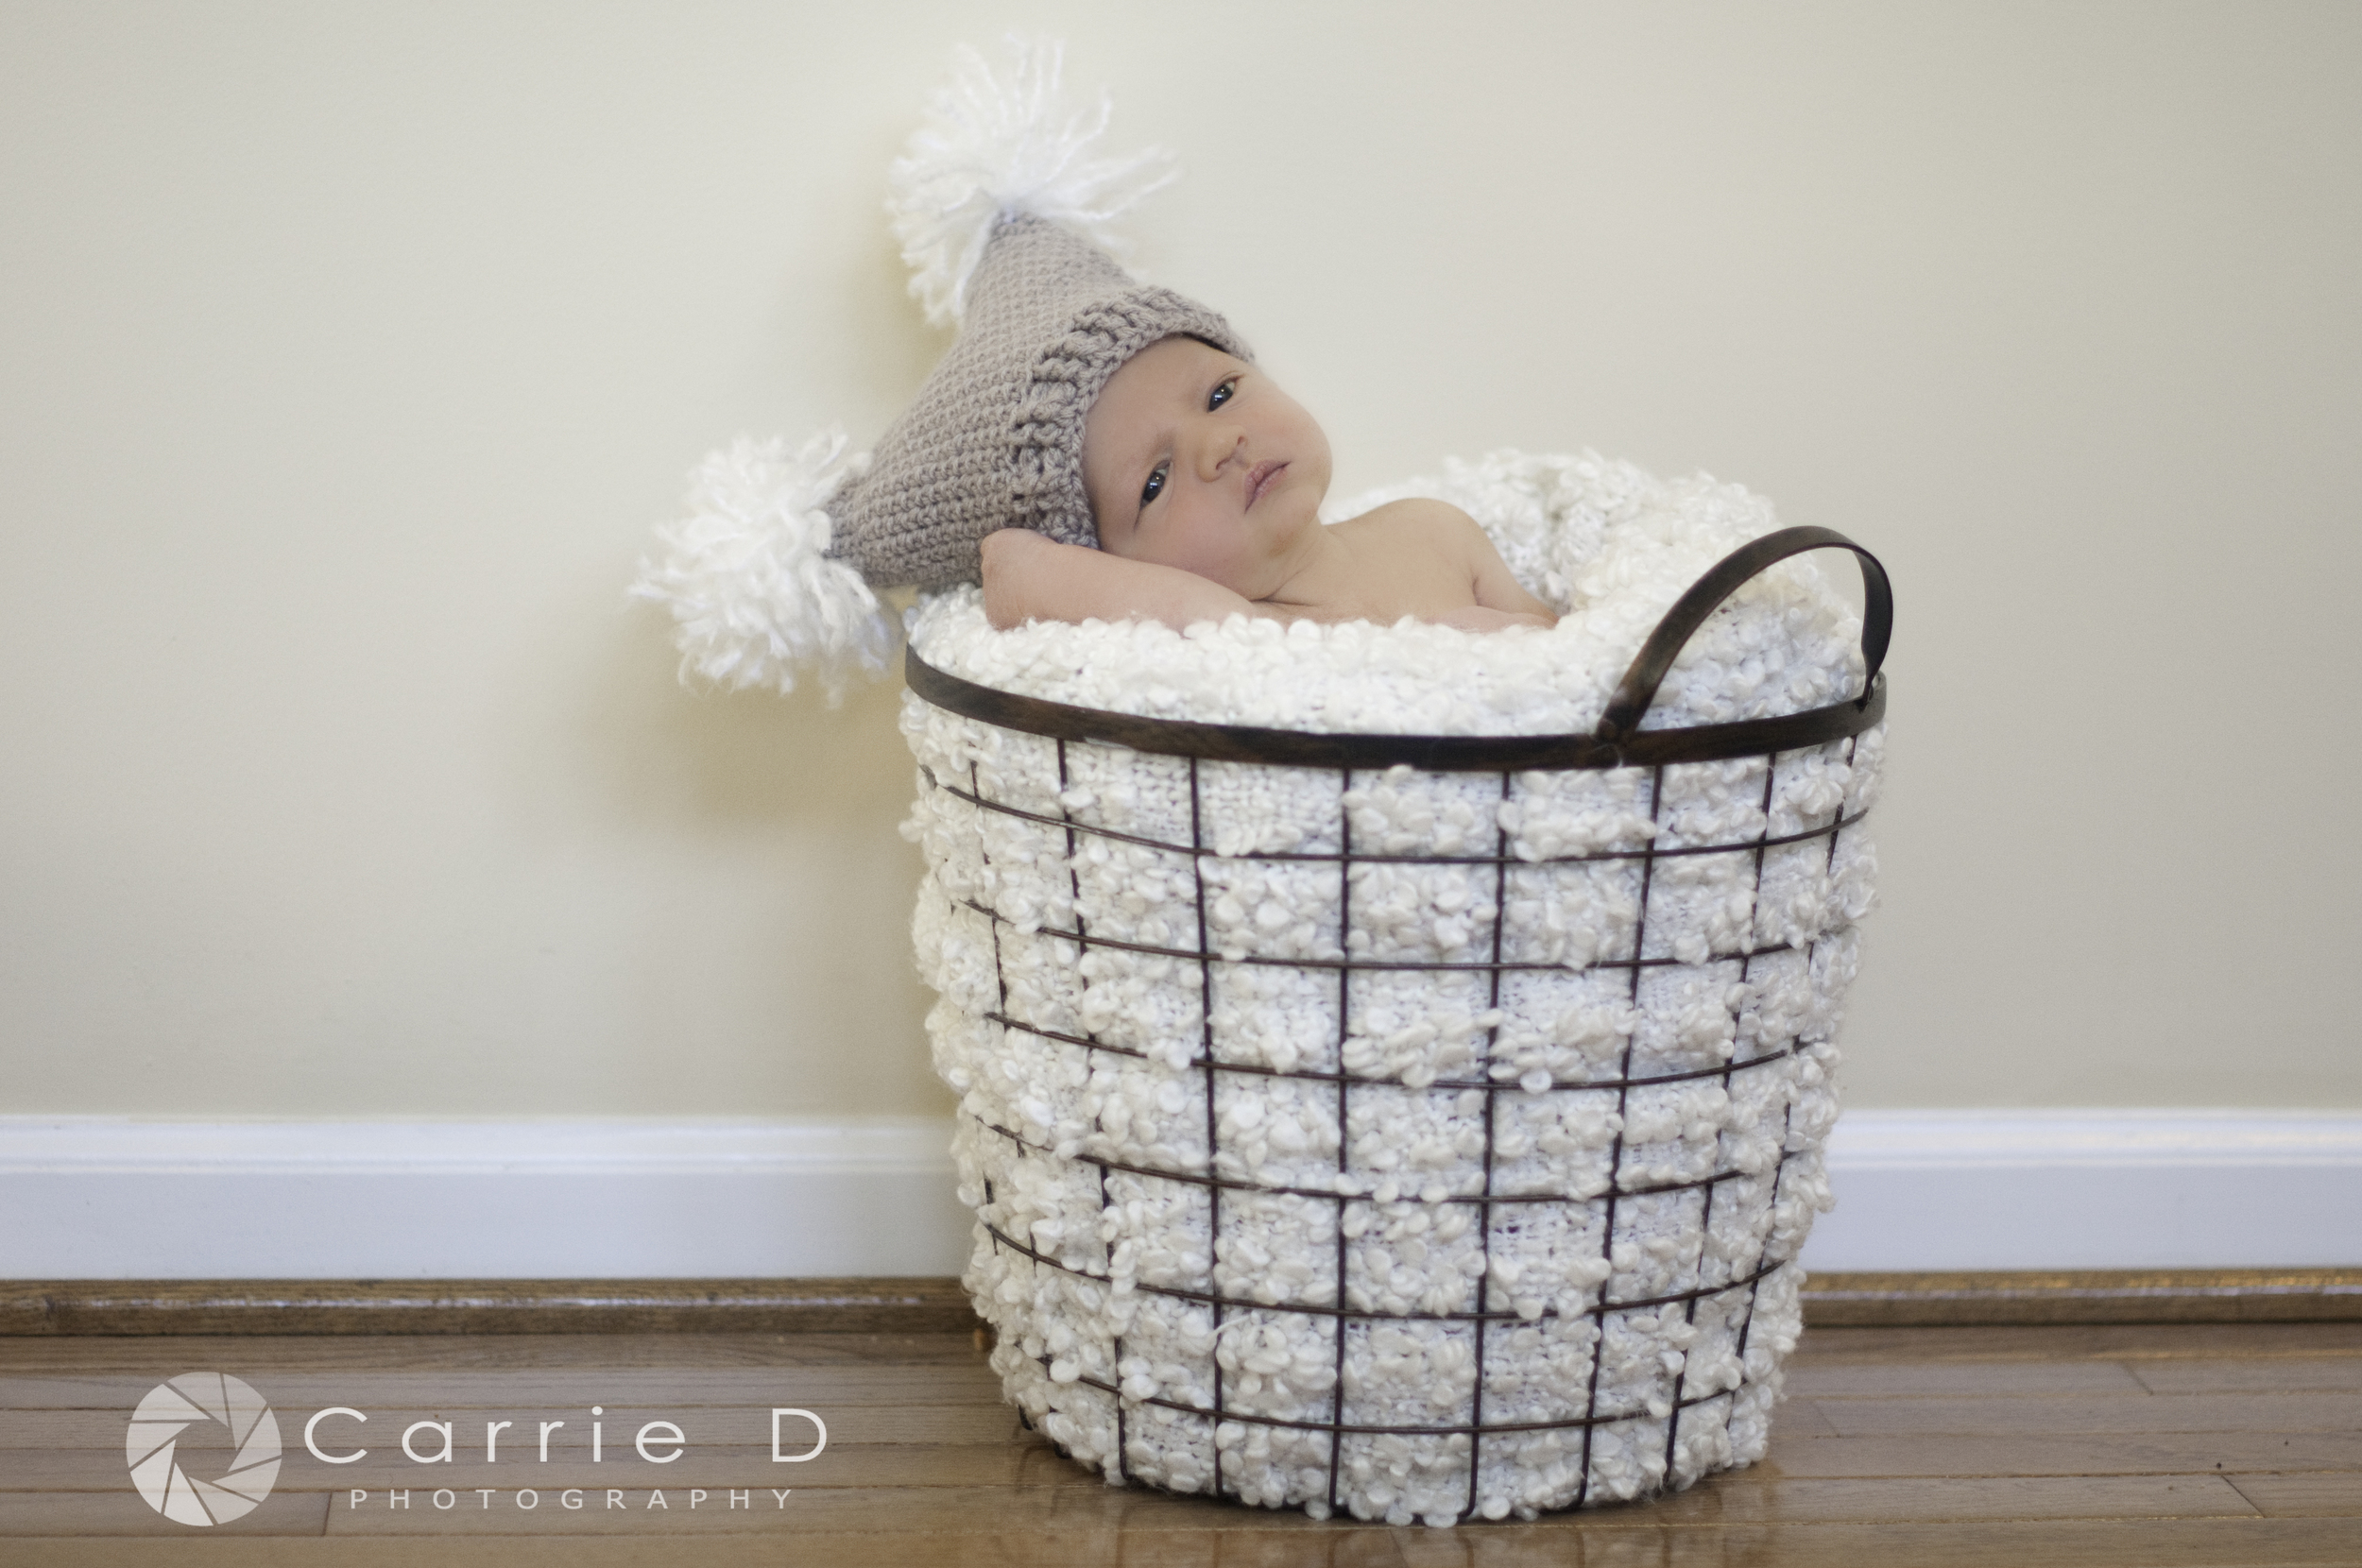 Harford County Newborn Photographer - Harford County Family Photographer - Harford County Natural Light Newborn Photographer - Natural Light Newborn Photography - Harford County Natural Light Family Photography - Newborn Posing - Sibling Photographer - Brothers